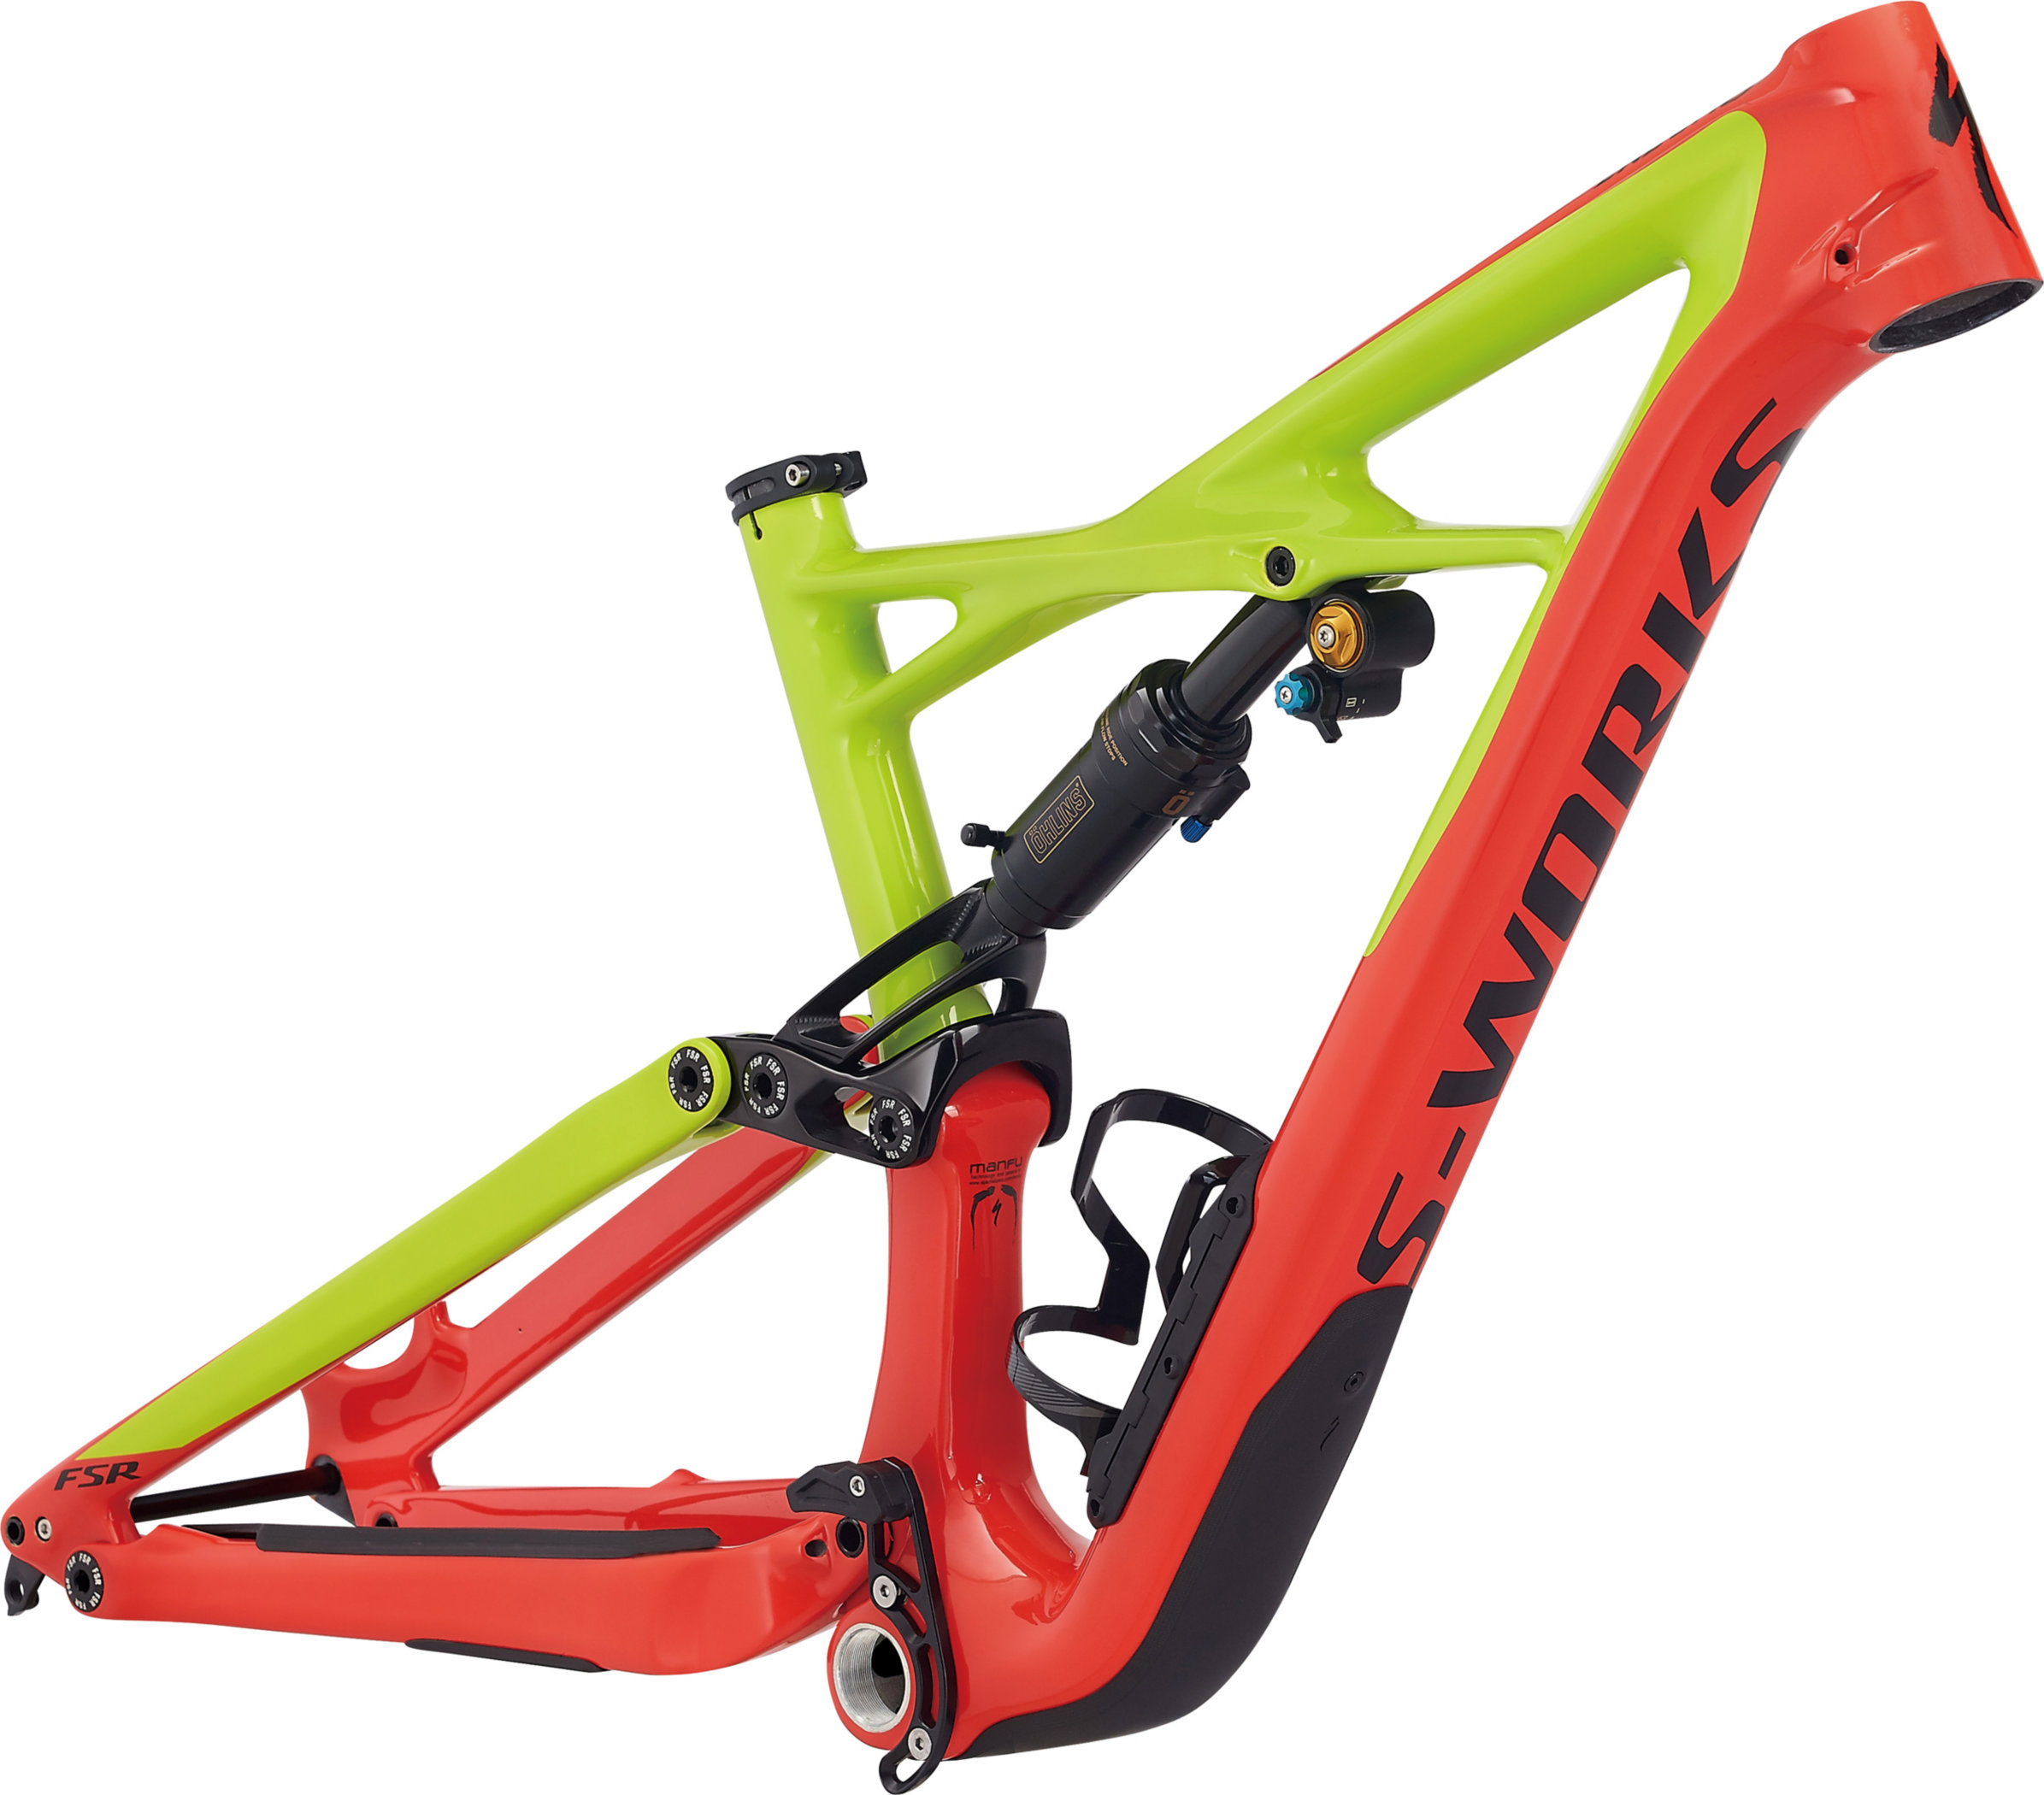 2017 Specialized S-WORKS ENDURO 650B FRAME - Specialized Concept Store